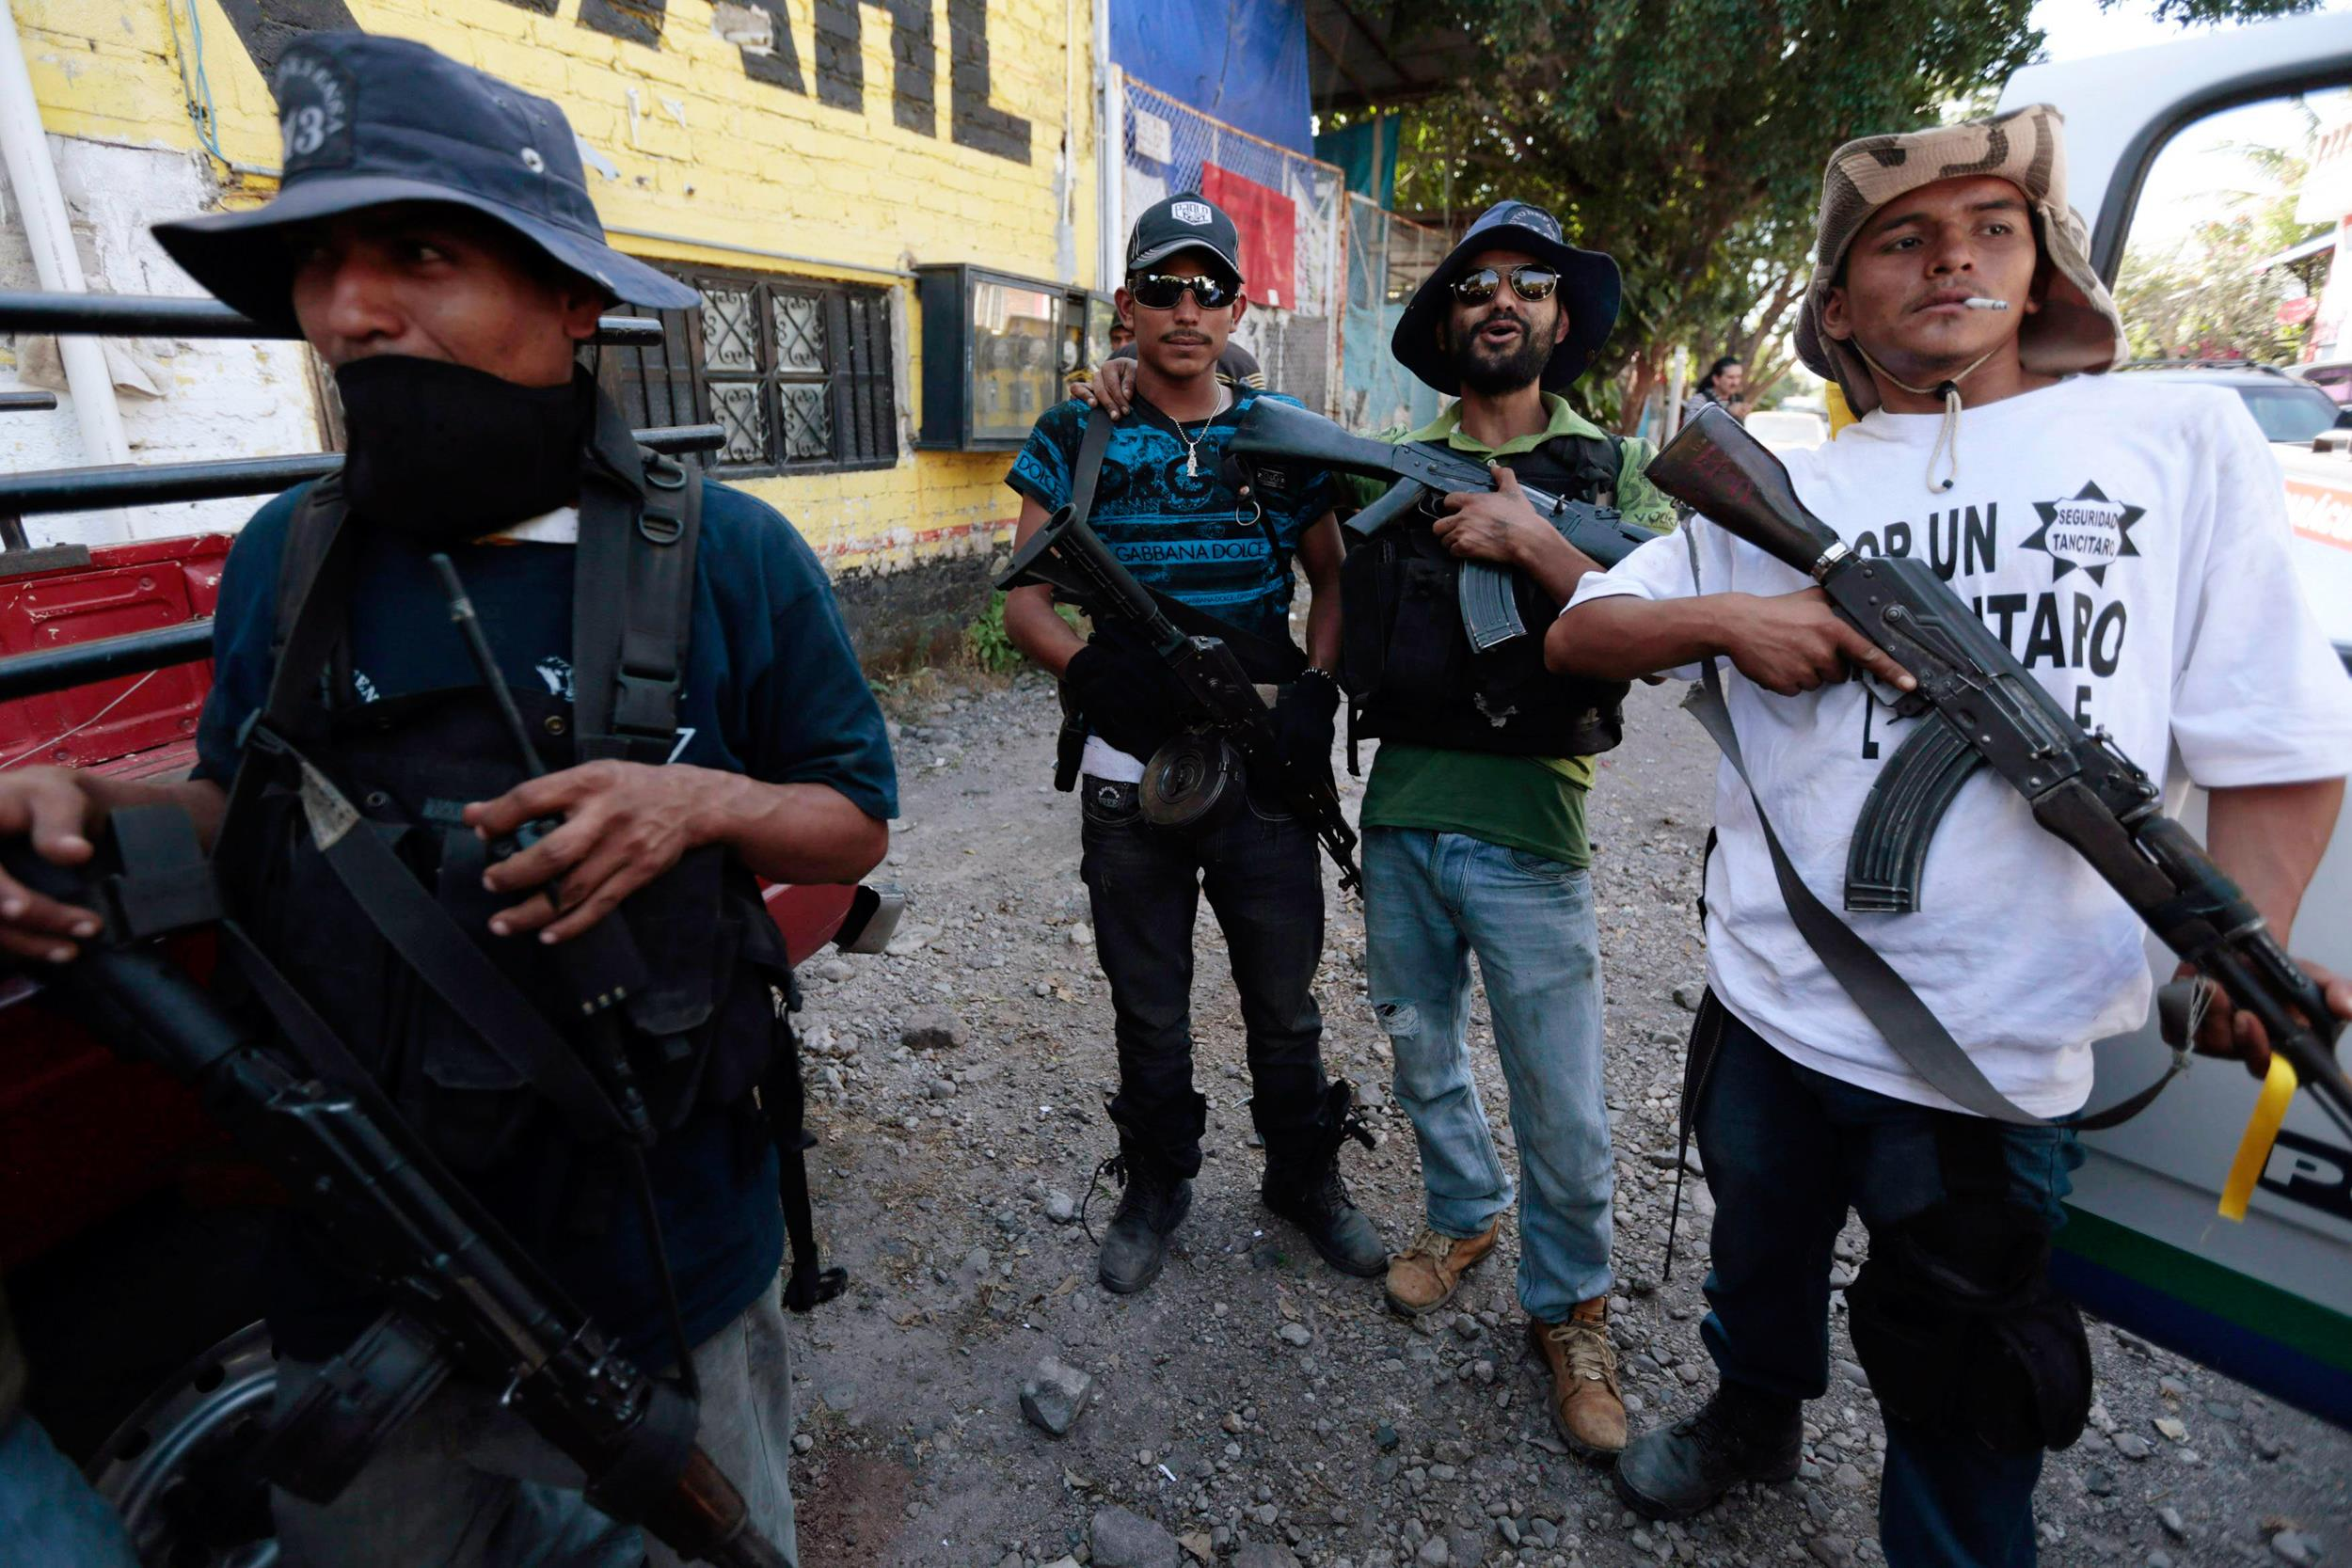 Image: Members of the community police, acting in this case as vigilantes, stand together after breaking into and taking over the village of Paracuaro in Michoacan state